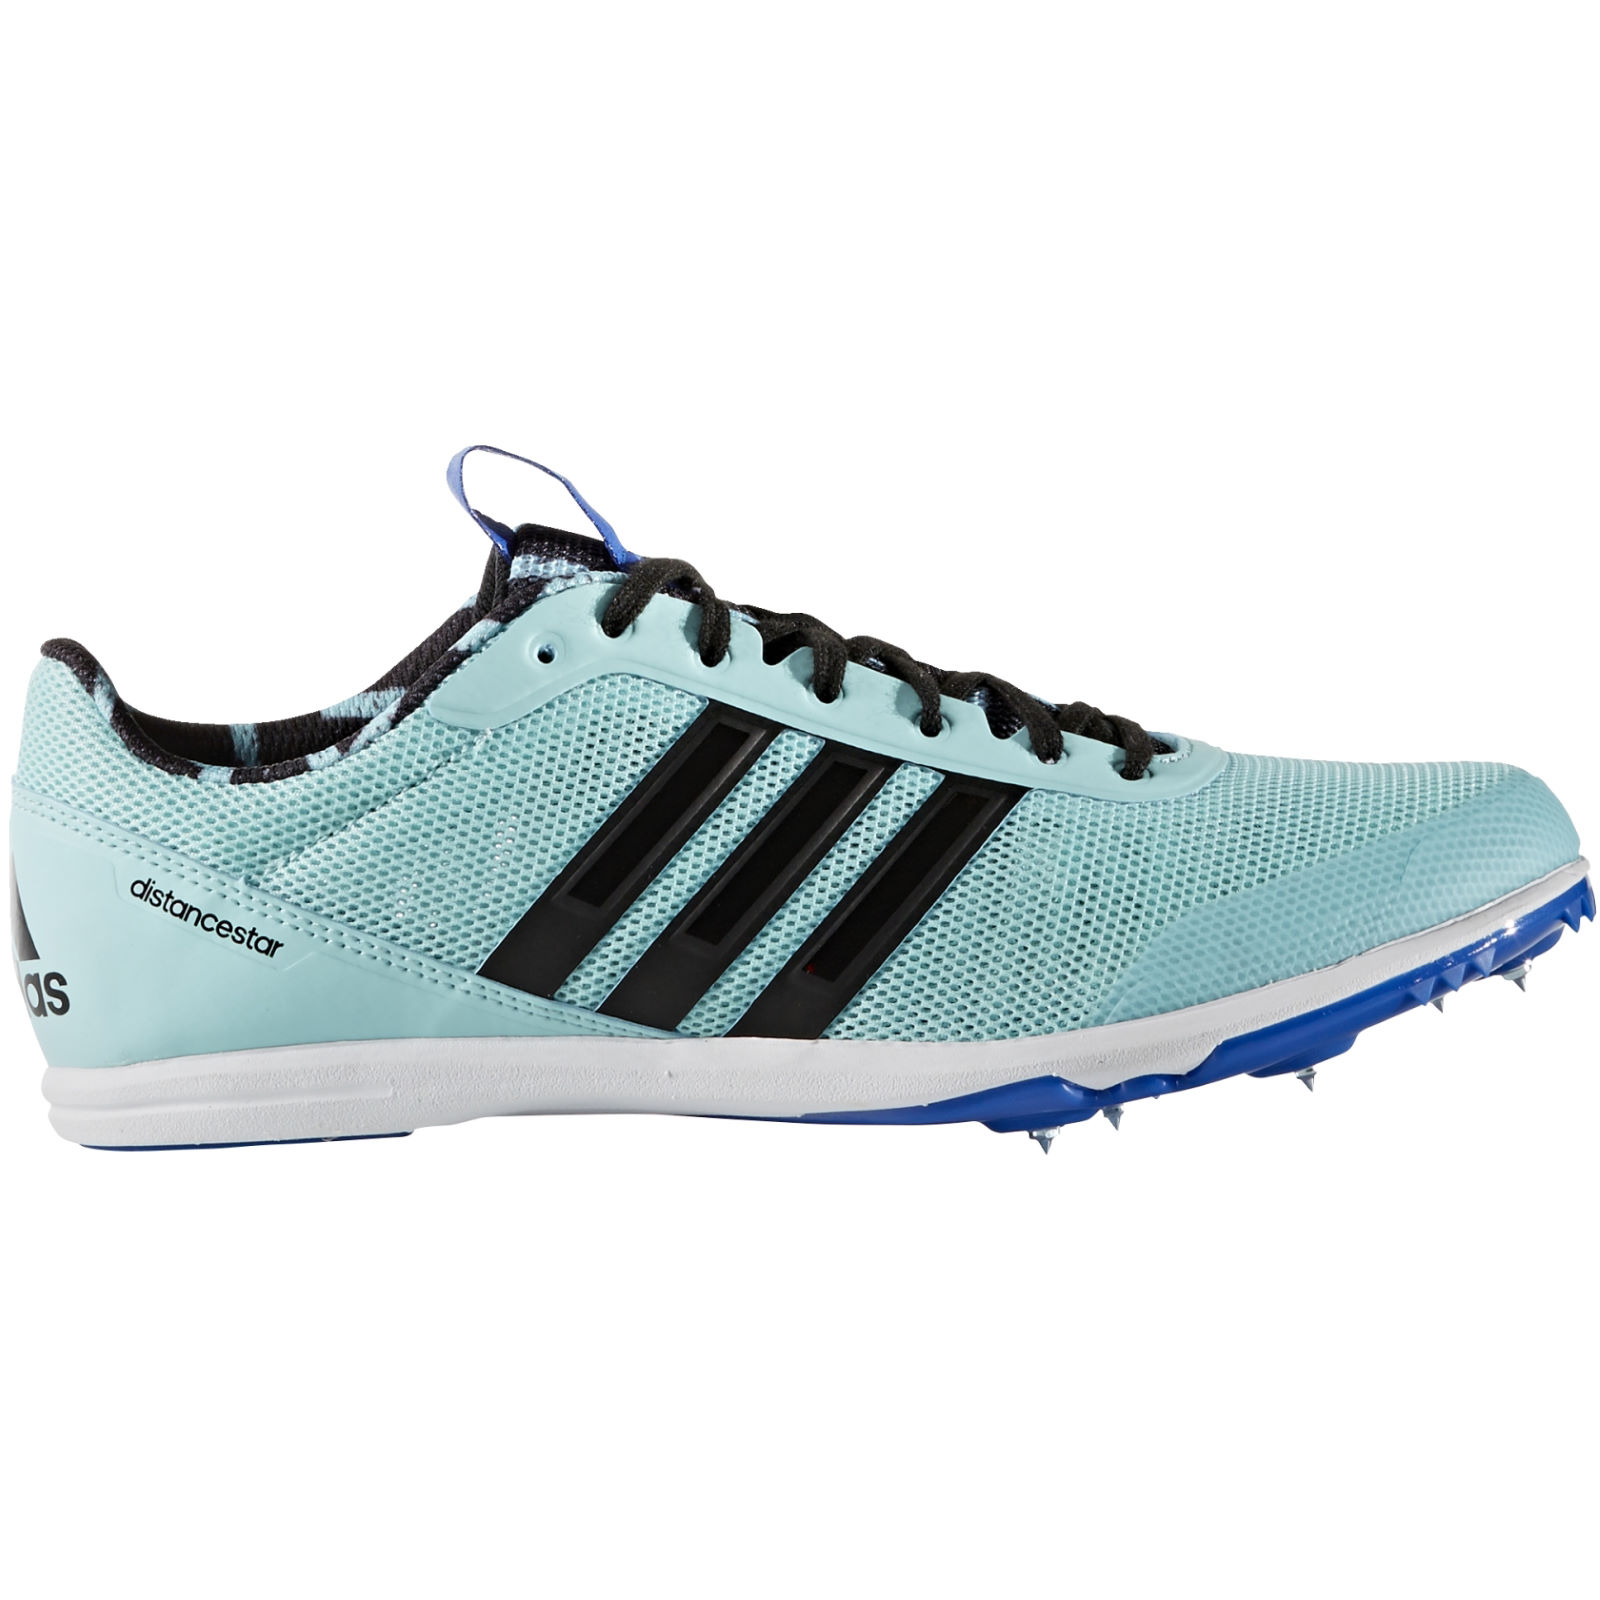 Womens Track Shoes